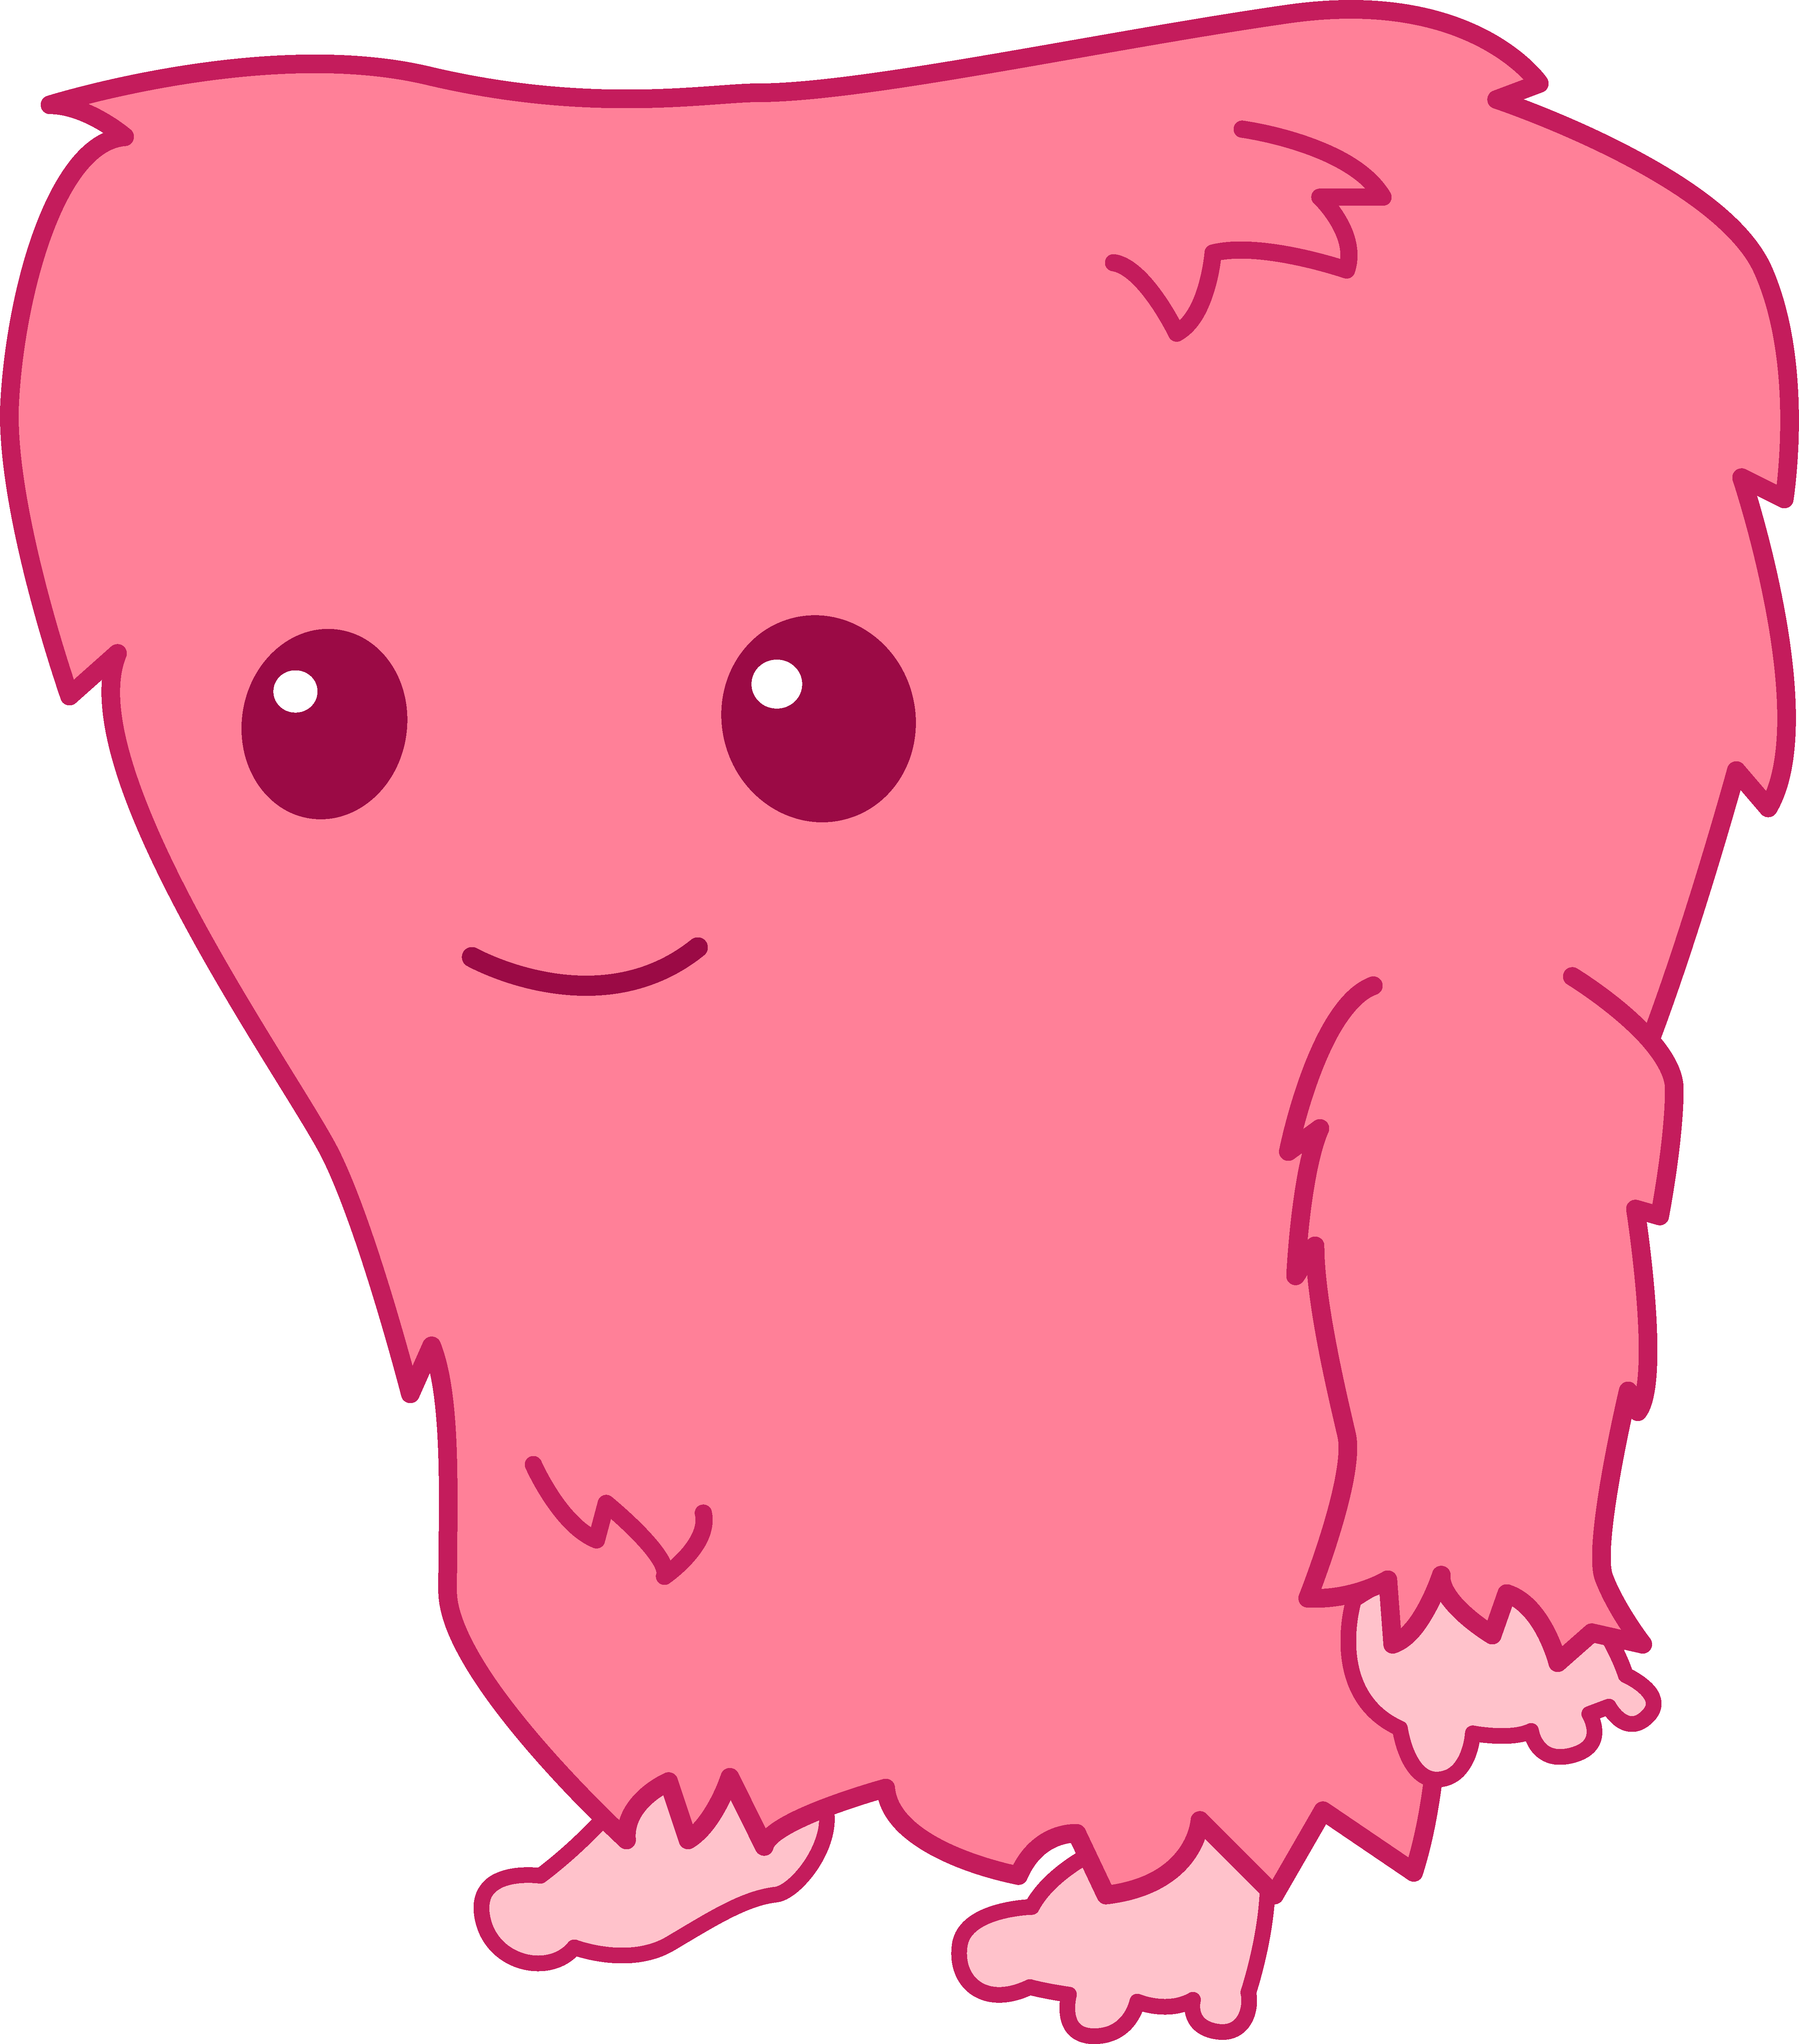 Fuzzy monster clipart.